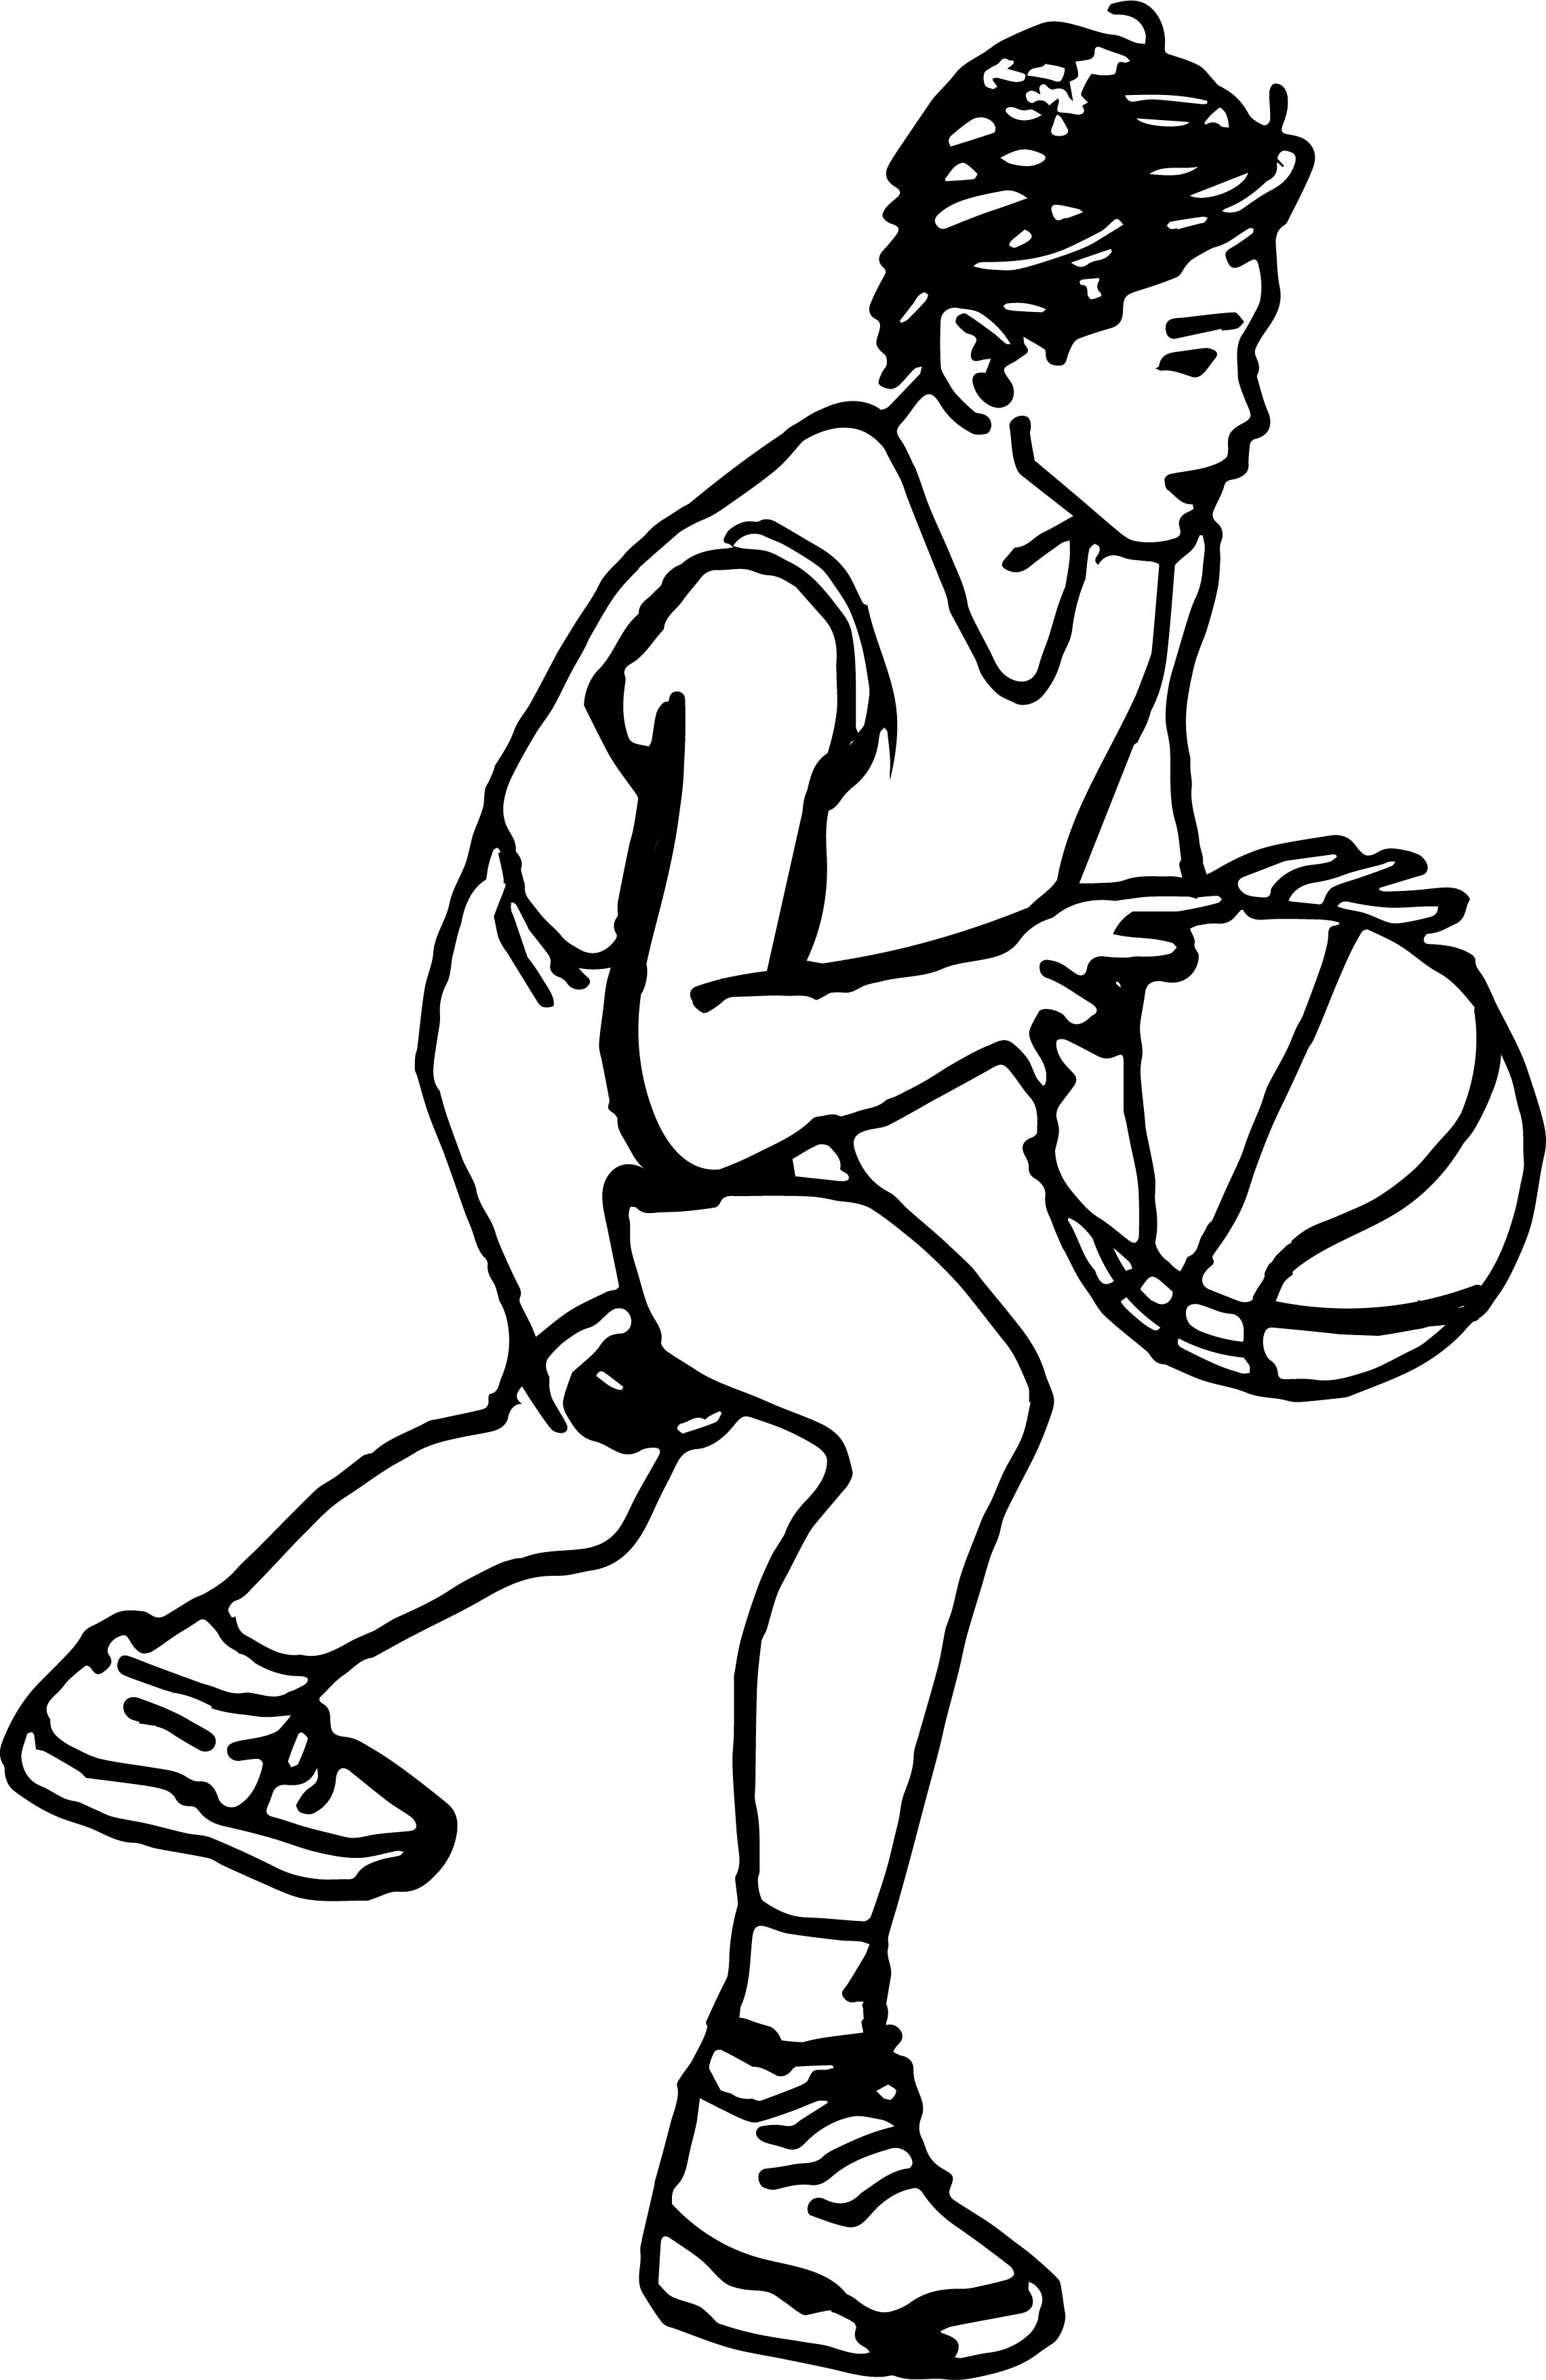 drawing of a basketball basketball line drawing free download on clipartmag a drawing of basketball